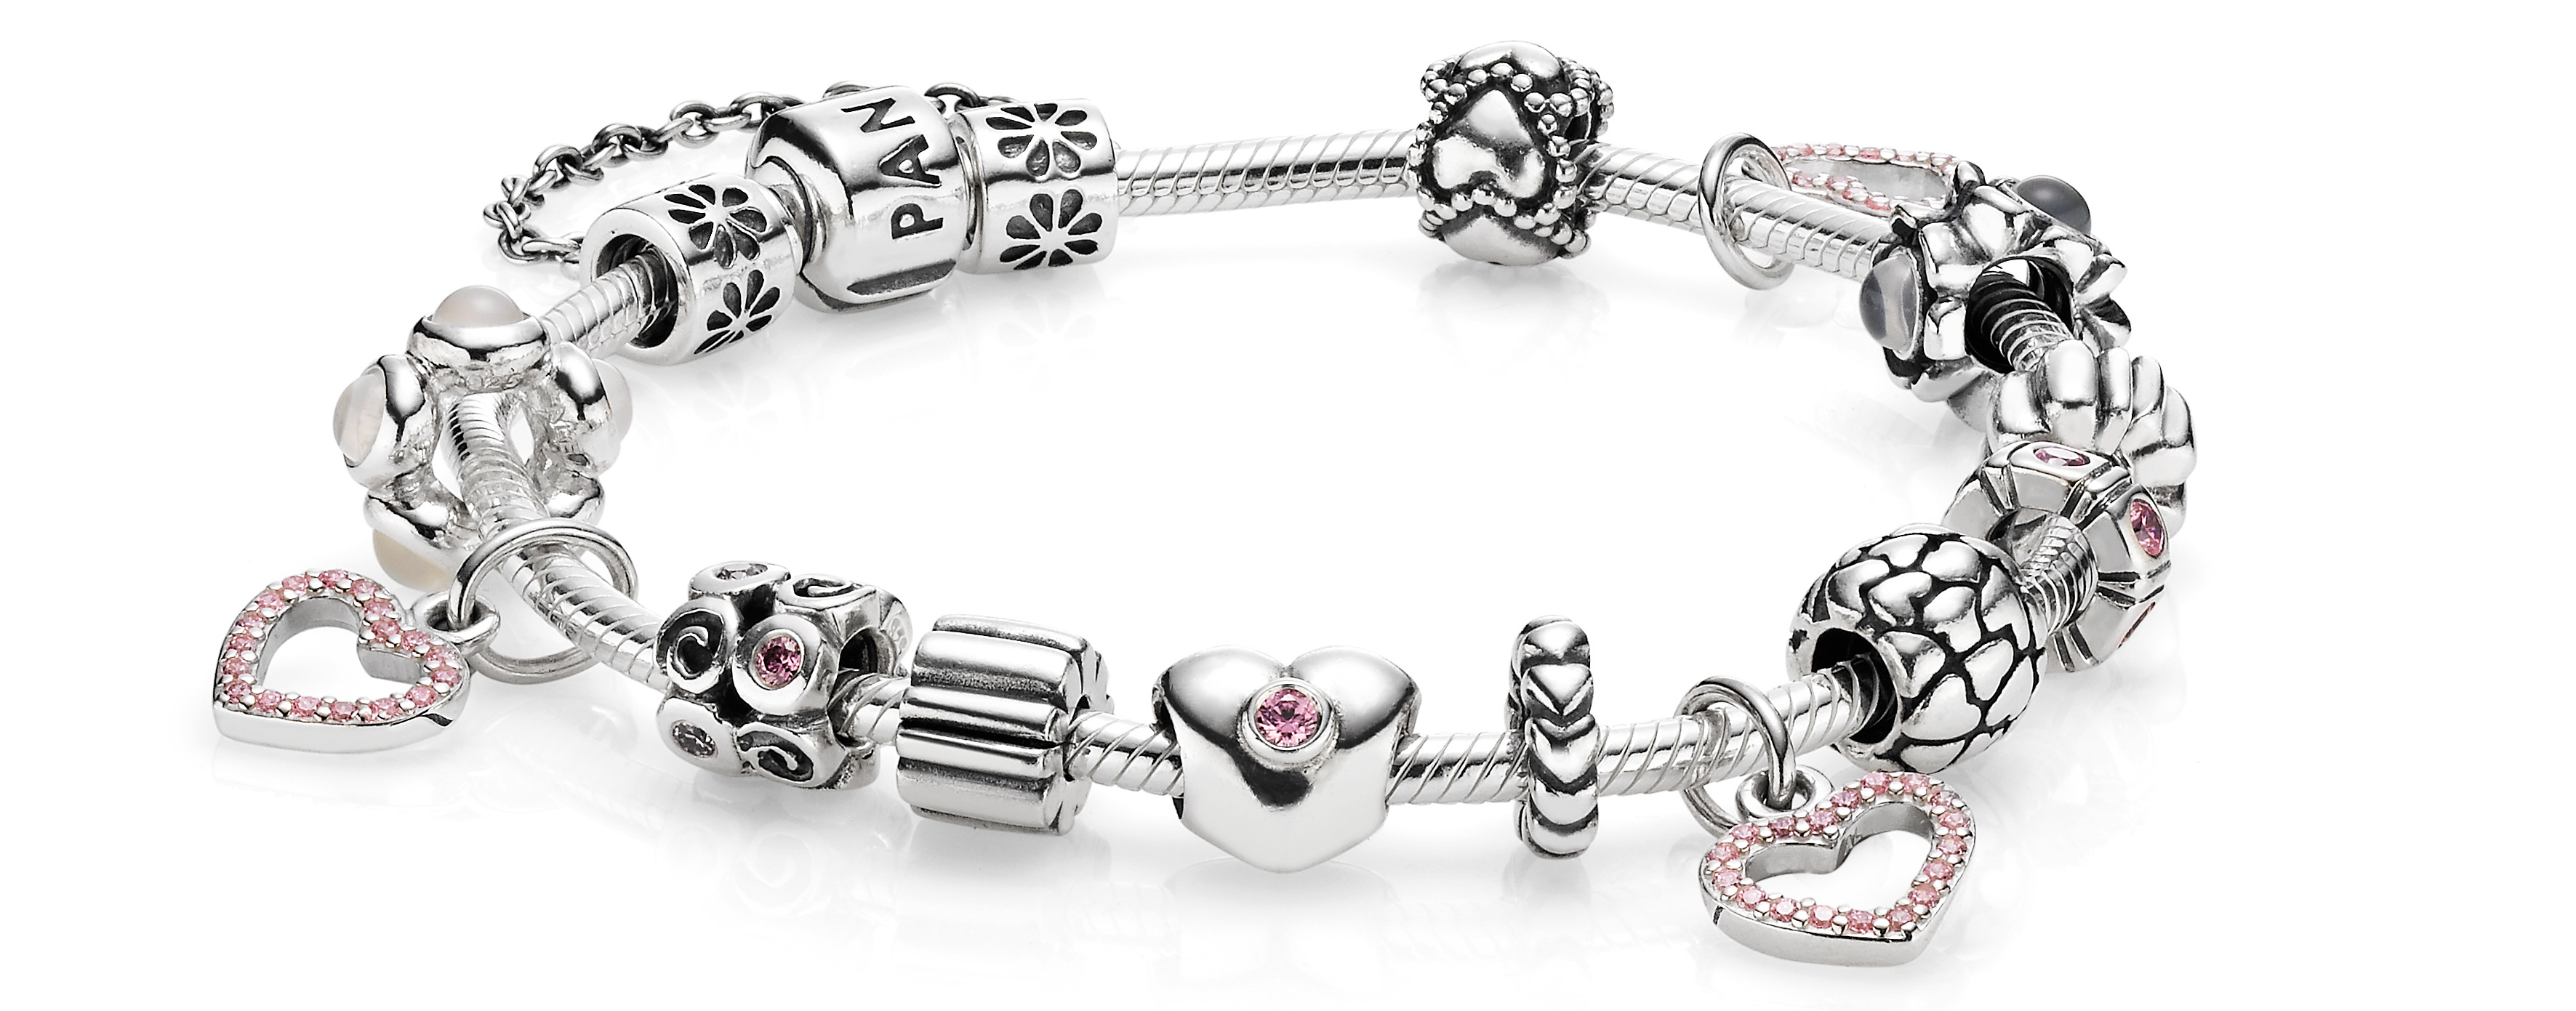 charms rings c collection pandora jewelry bracelet nurse charm